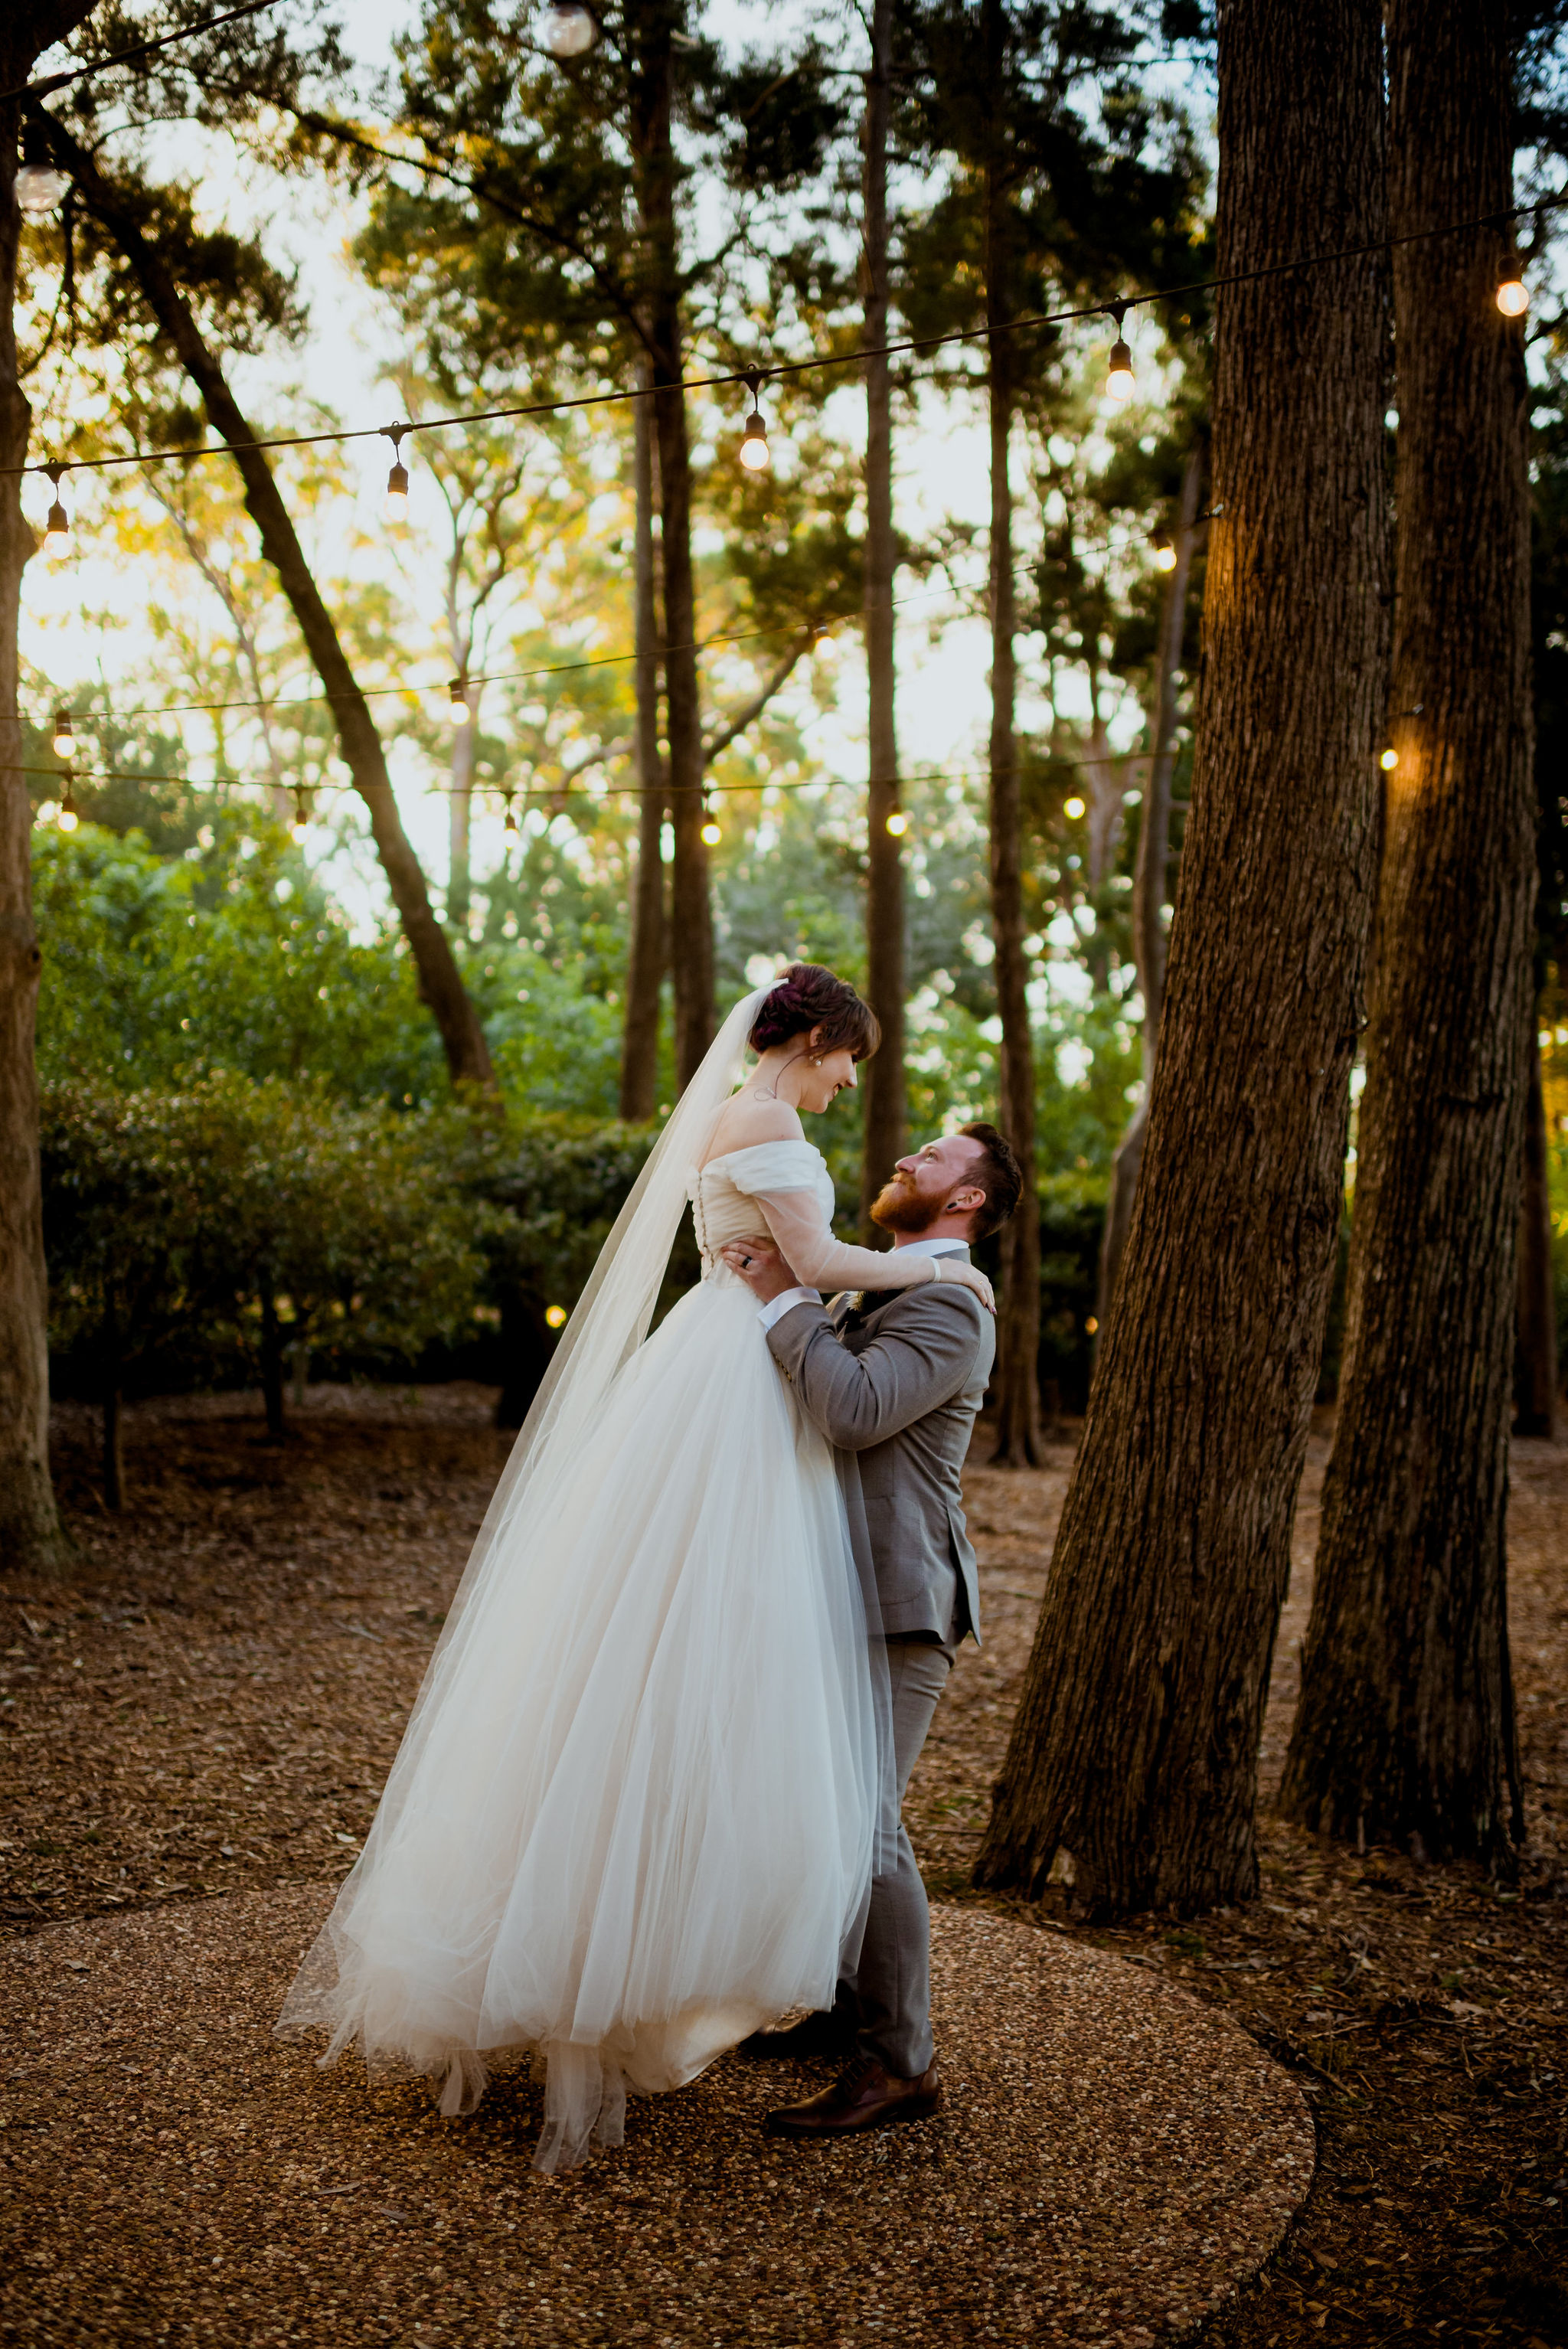 Groom lifts his bride up in a forest